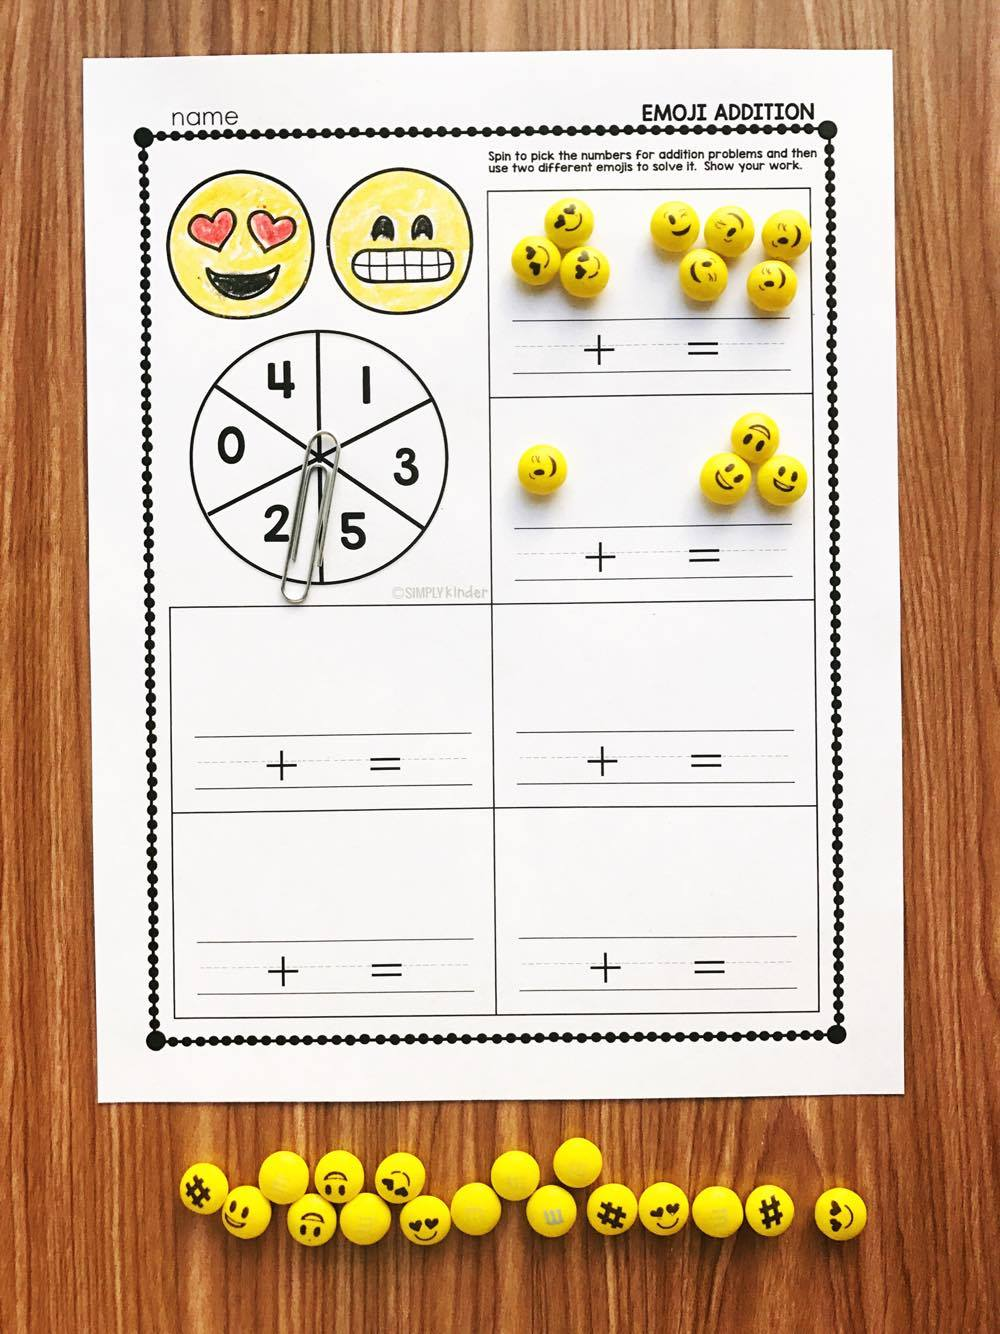 ADDITION ACTIVES: Free activities for Emoji Conversation Hearts and Emoji M&M's. These are prefect for kindergarten and first grades.